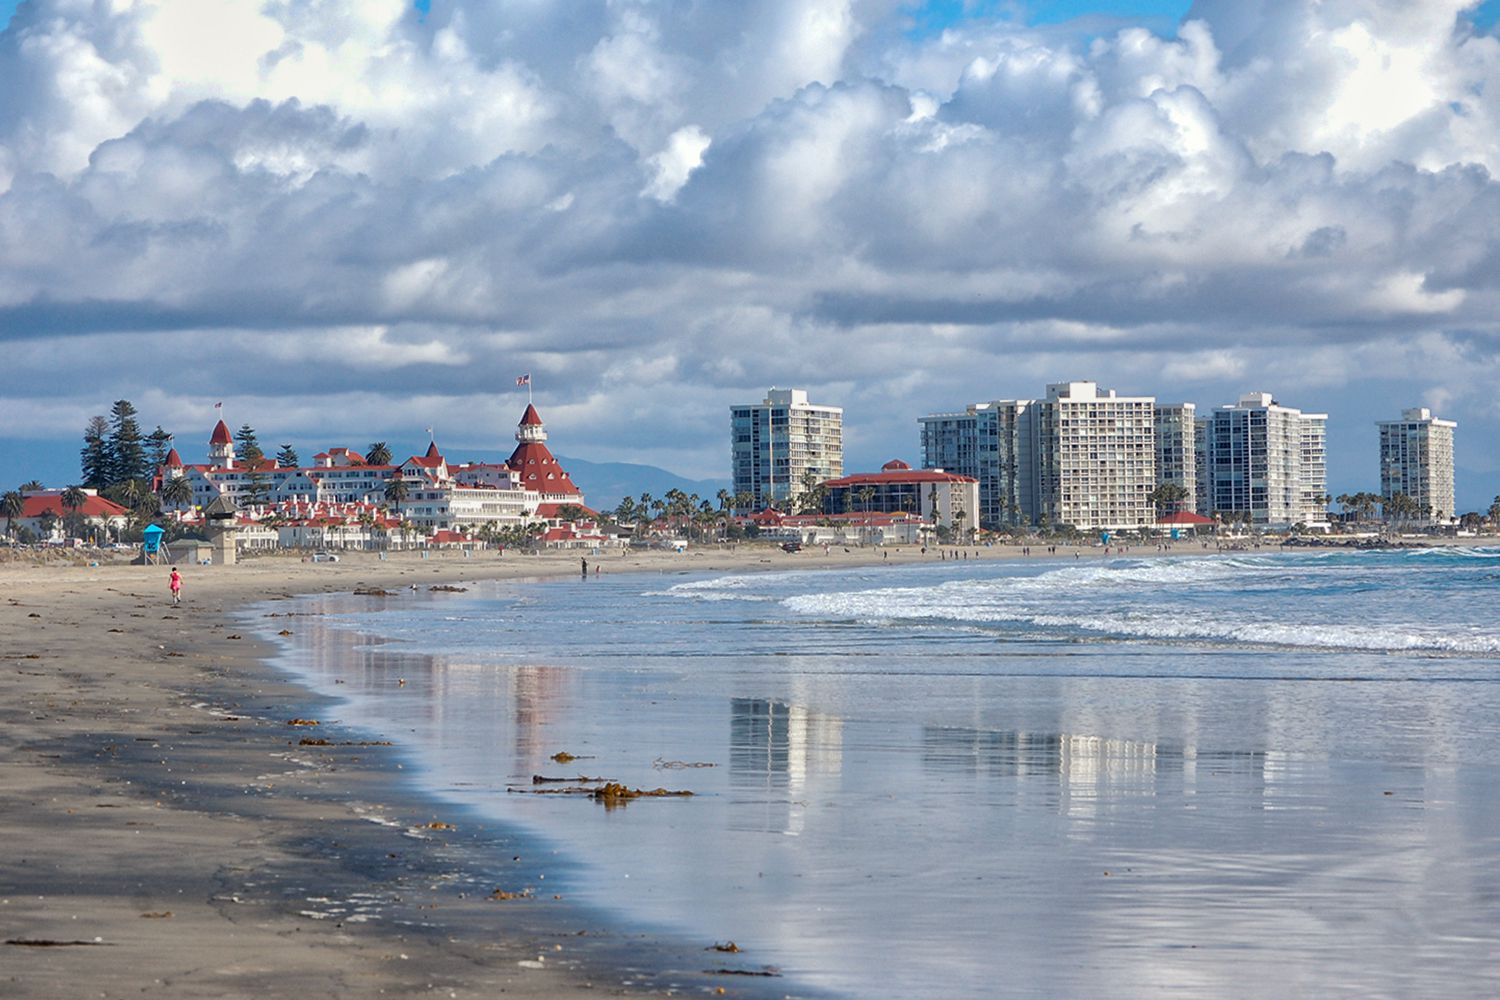 Coronado Island Hotels: Read This Before You Reserve